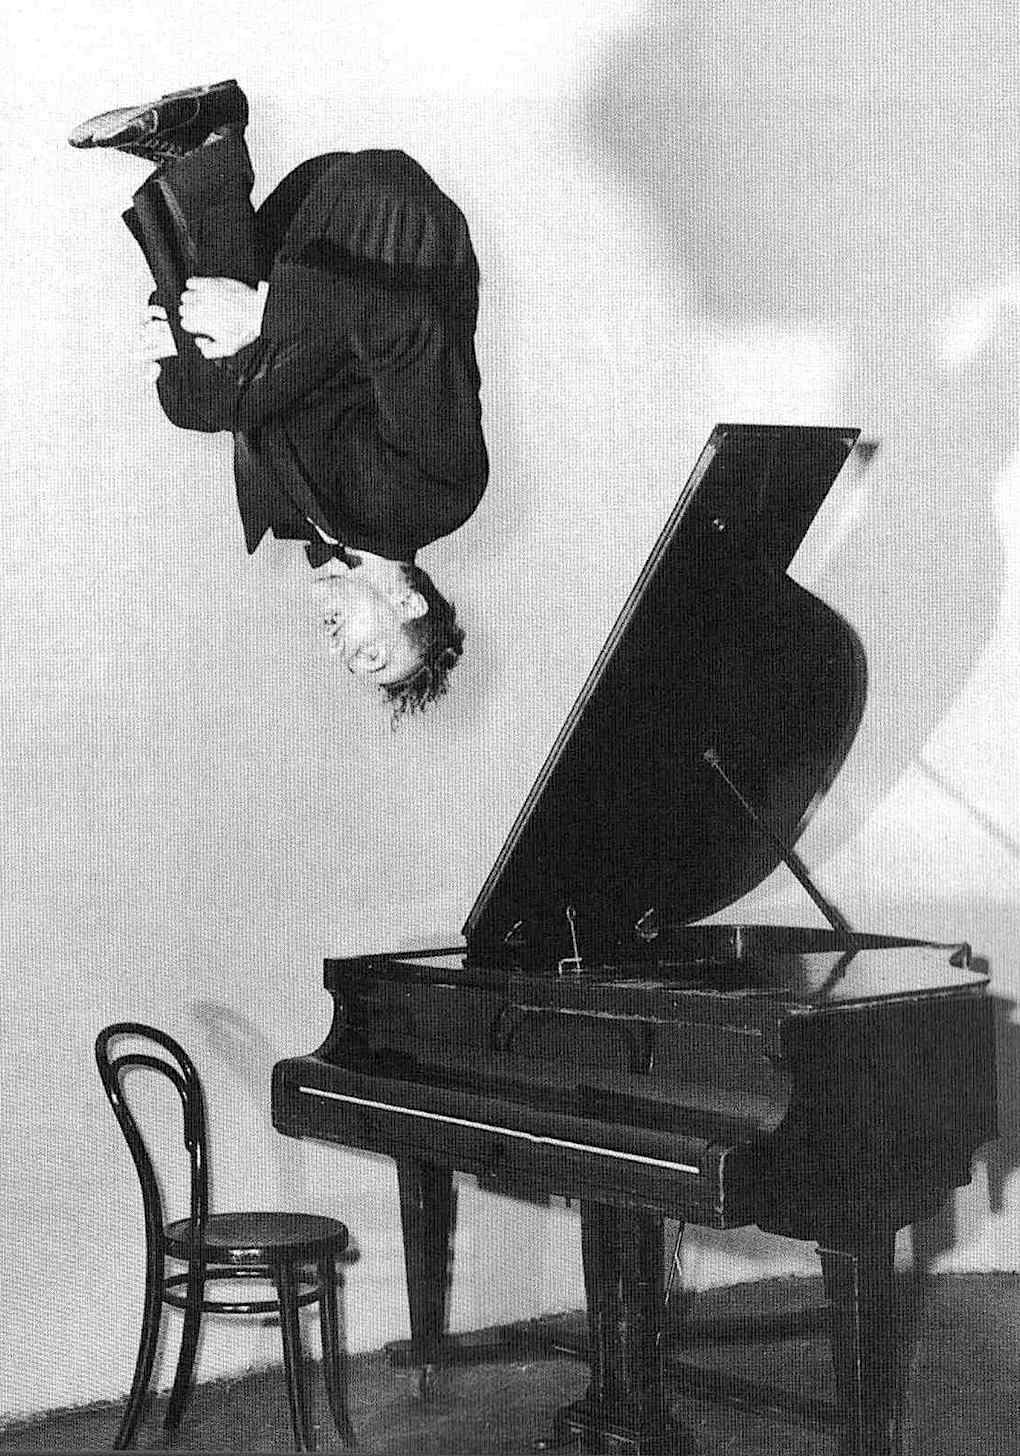 Jerry Lee Lewis jumping from his piano in a photograph, the killer